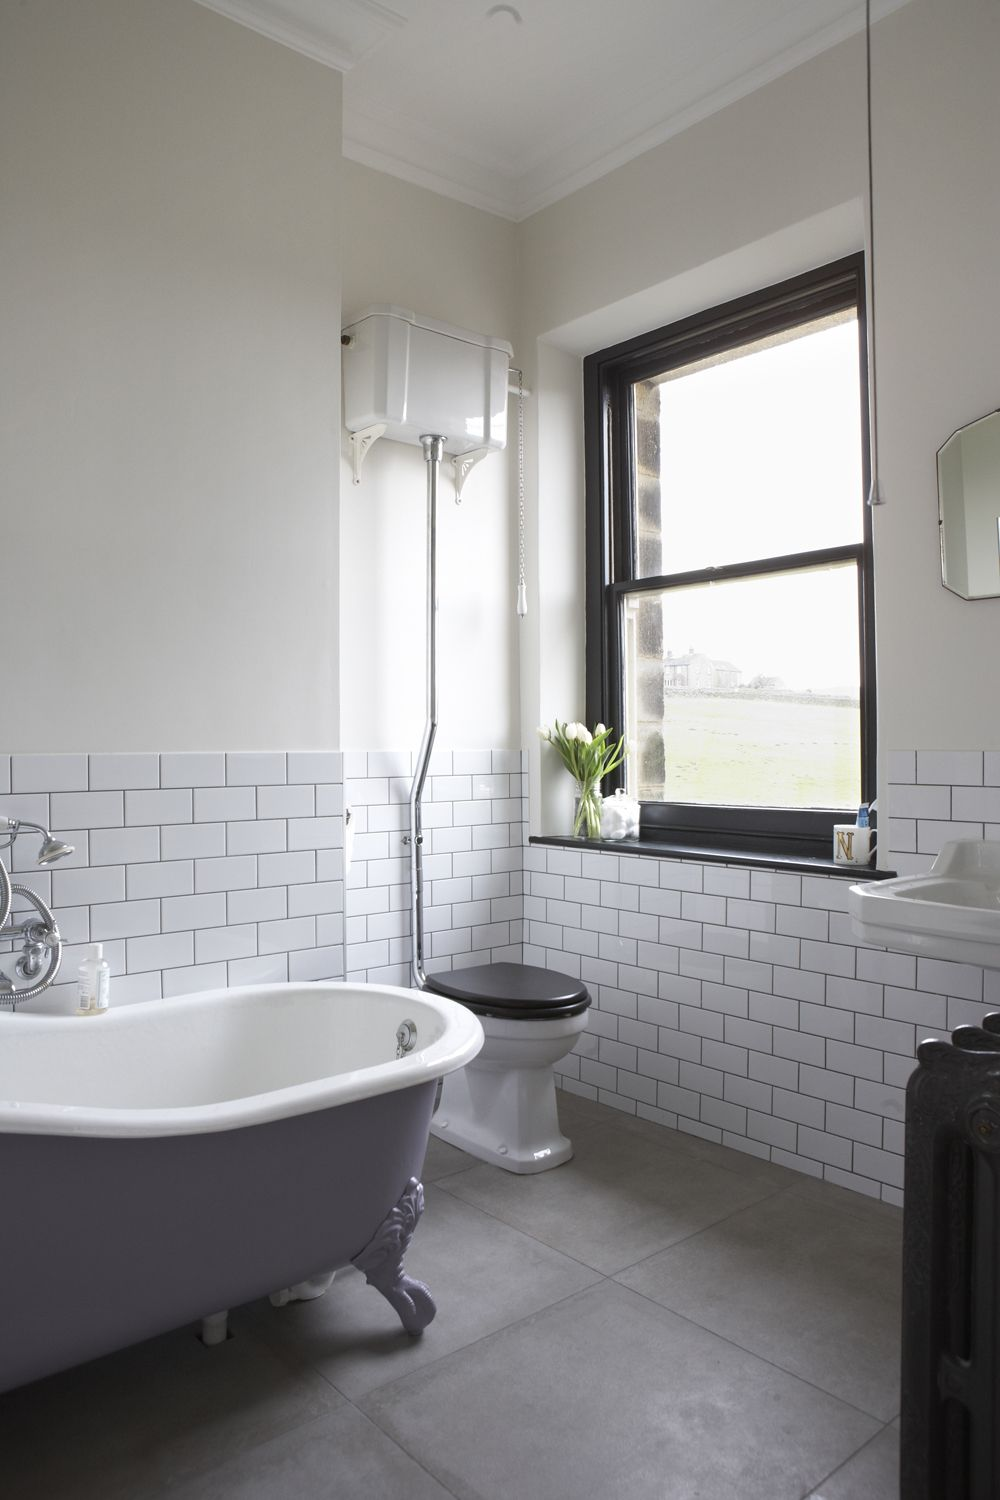 House bathroom. Metro tiles, black painted window, art deco mirror ...